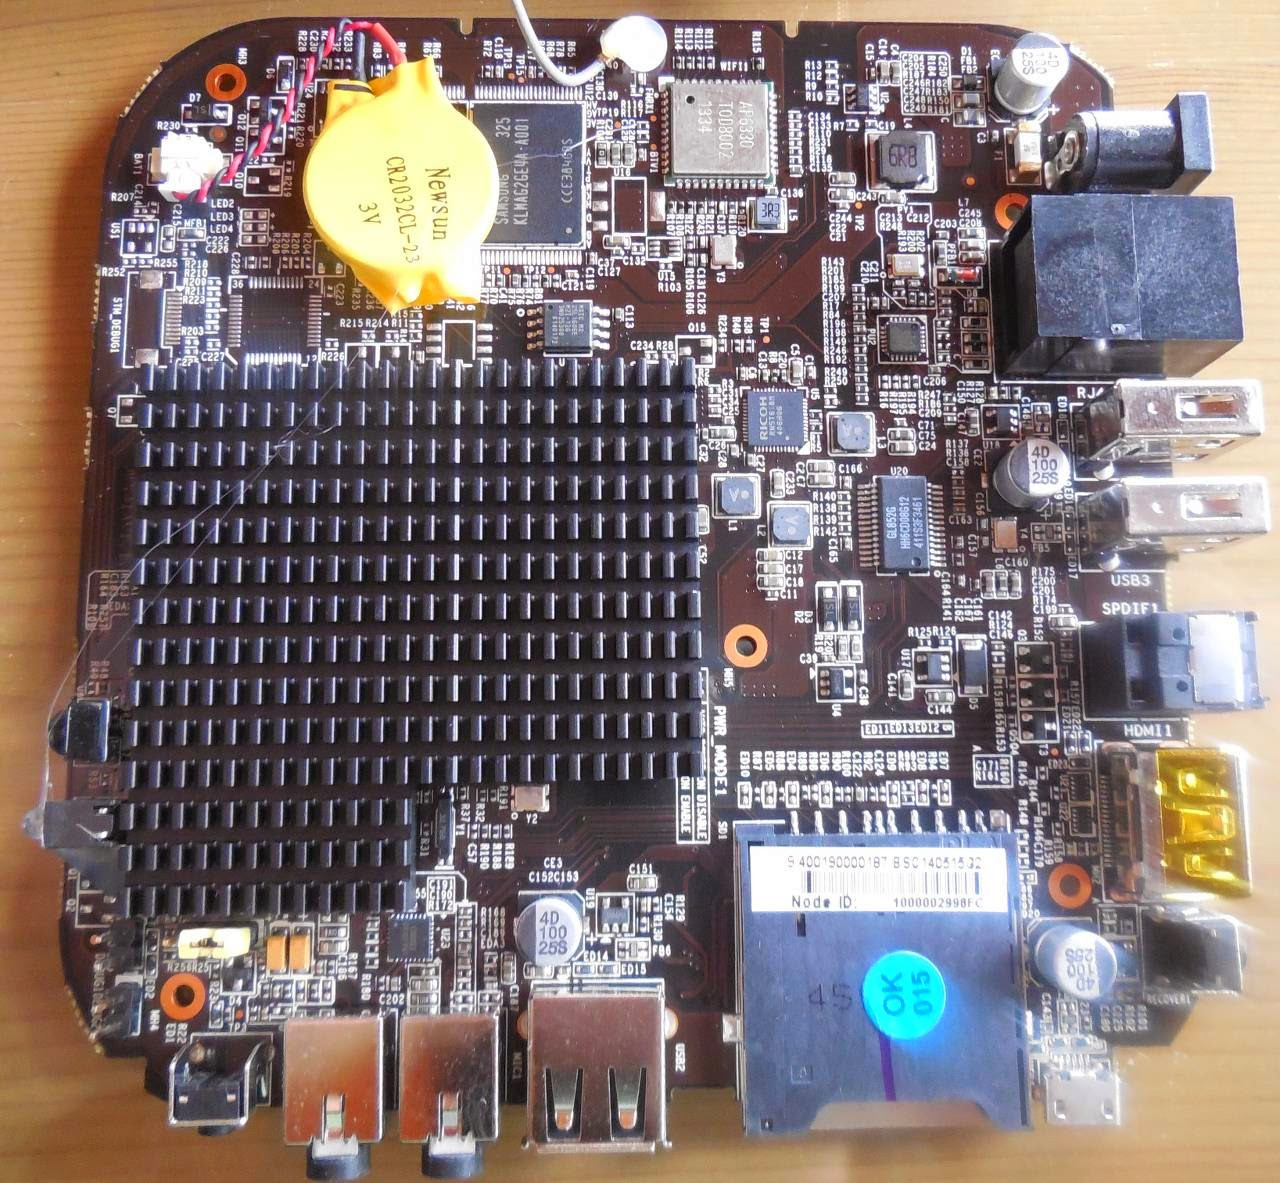 http://www.cnx-software.com/wp-content/uploads/2014/12/MINIX_NEO_X8_Board_Large.jpg